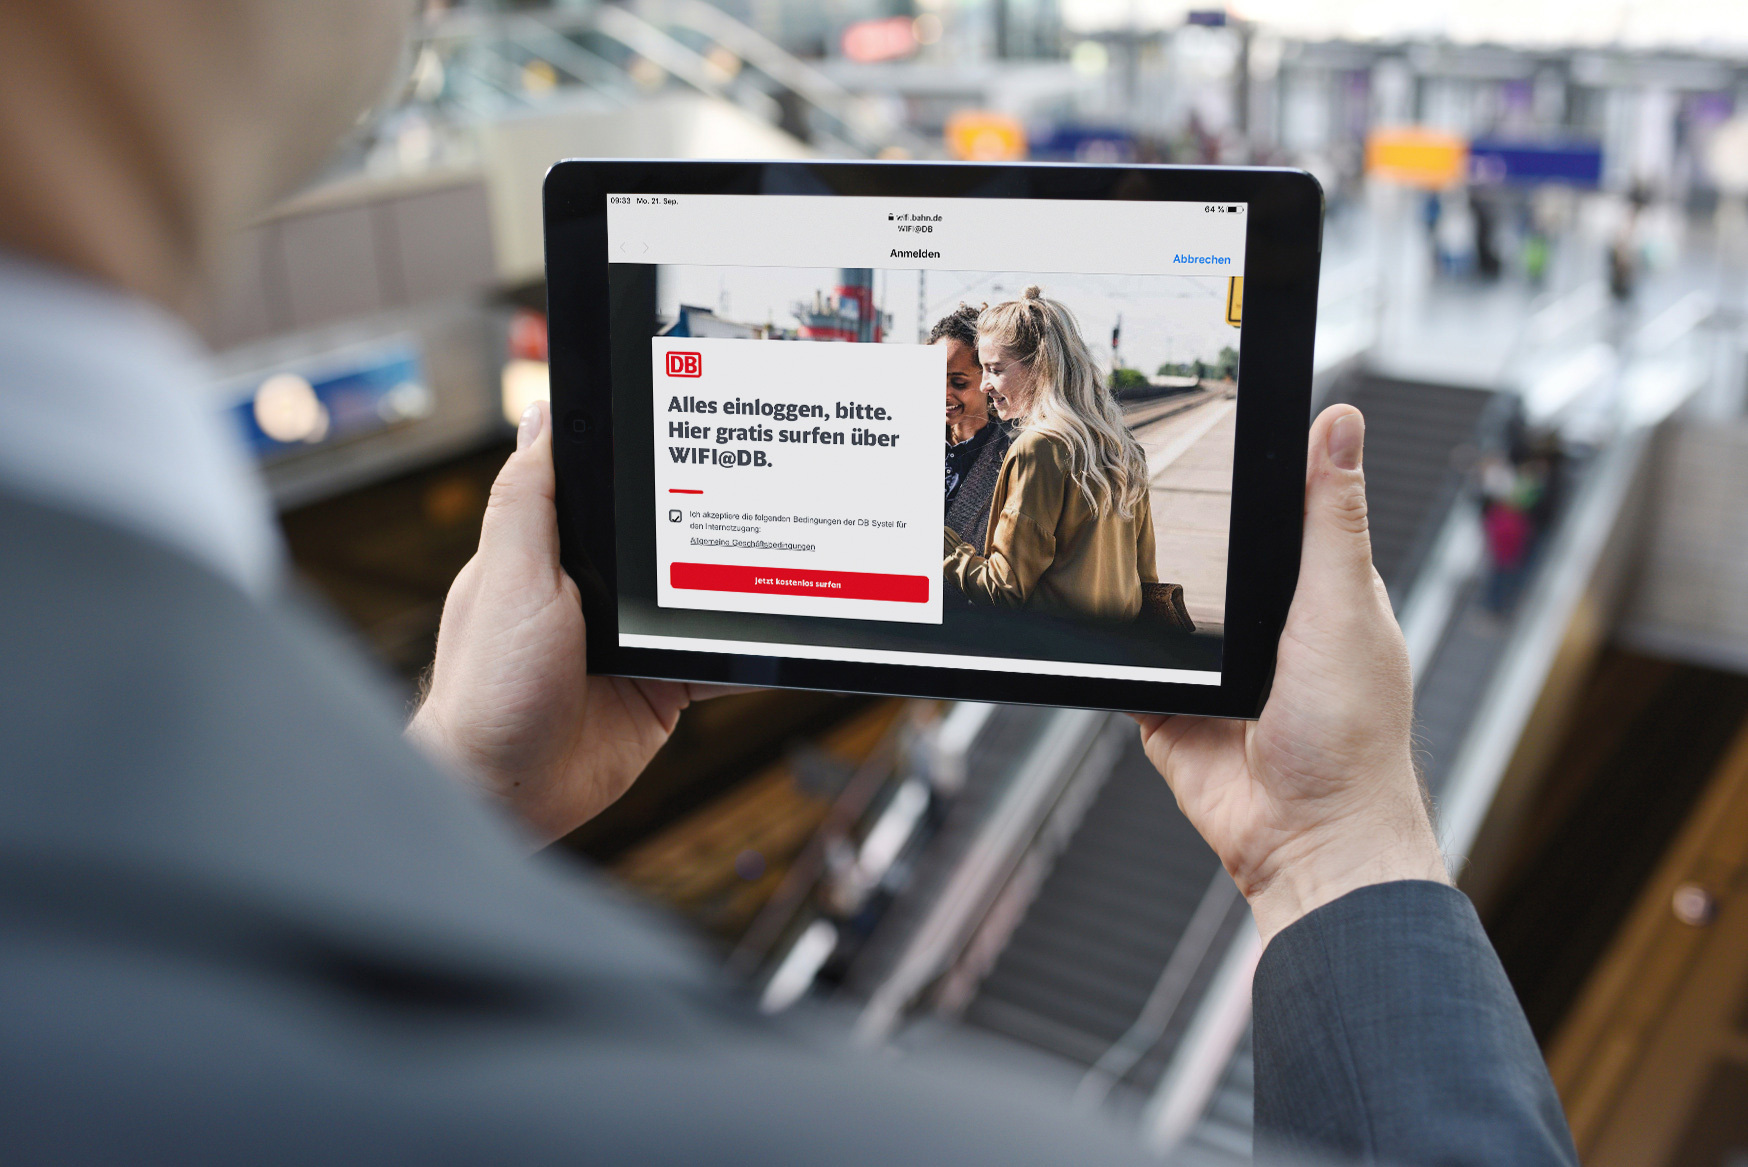 Deutsche Bahn introduces WIFI@DB